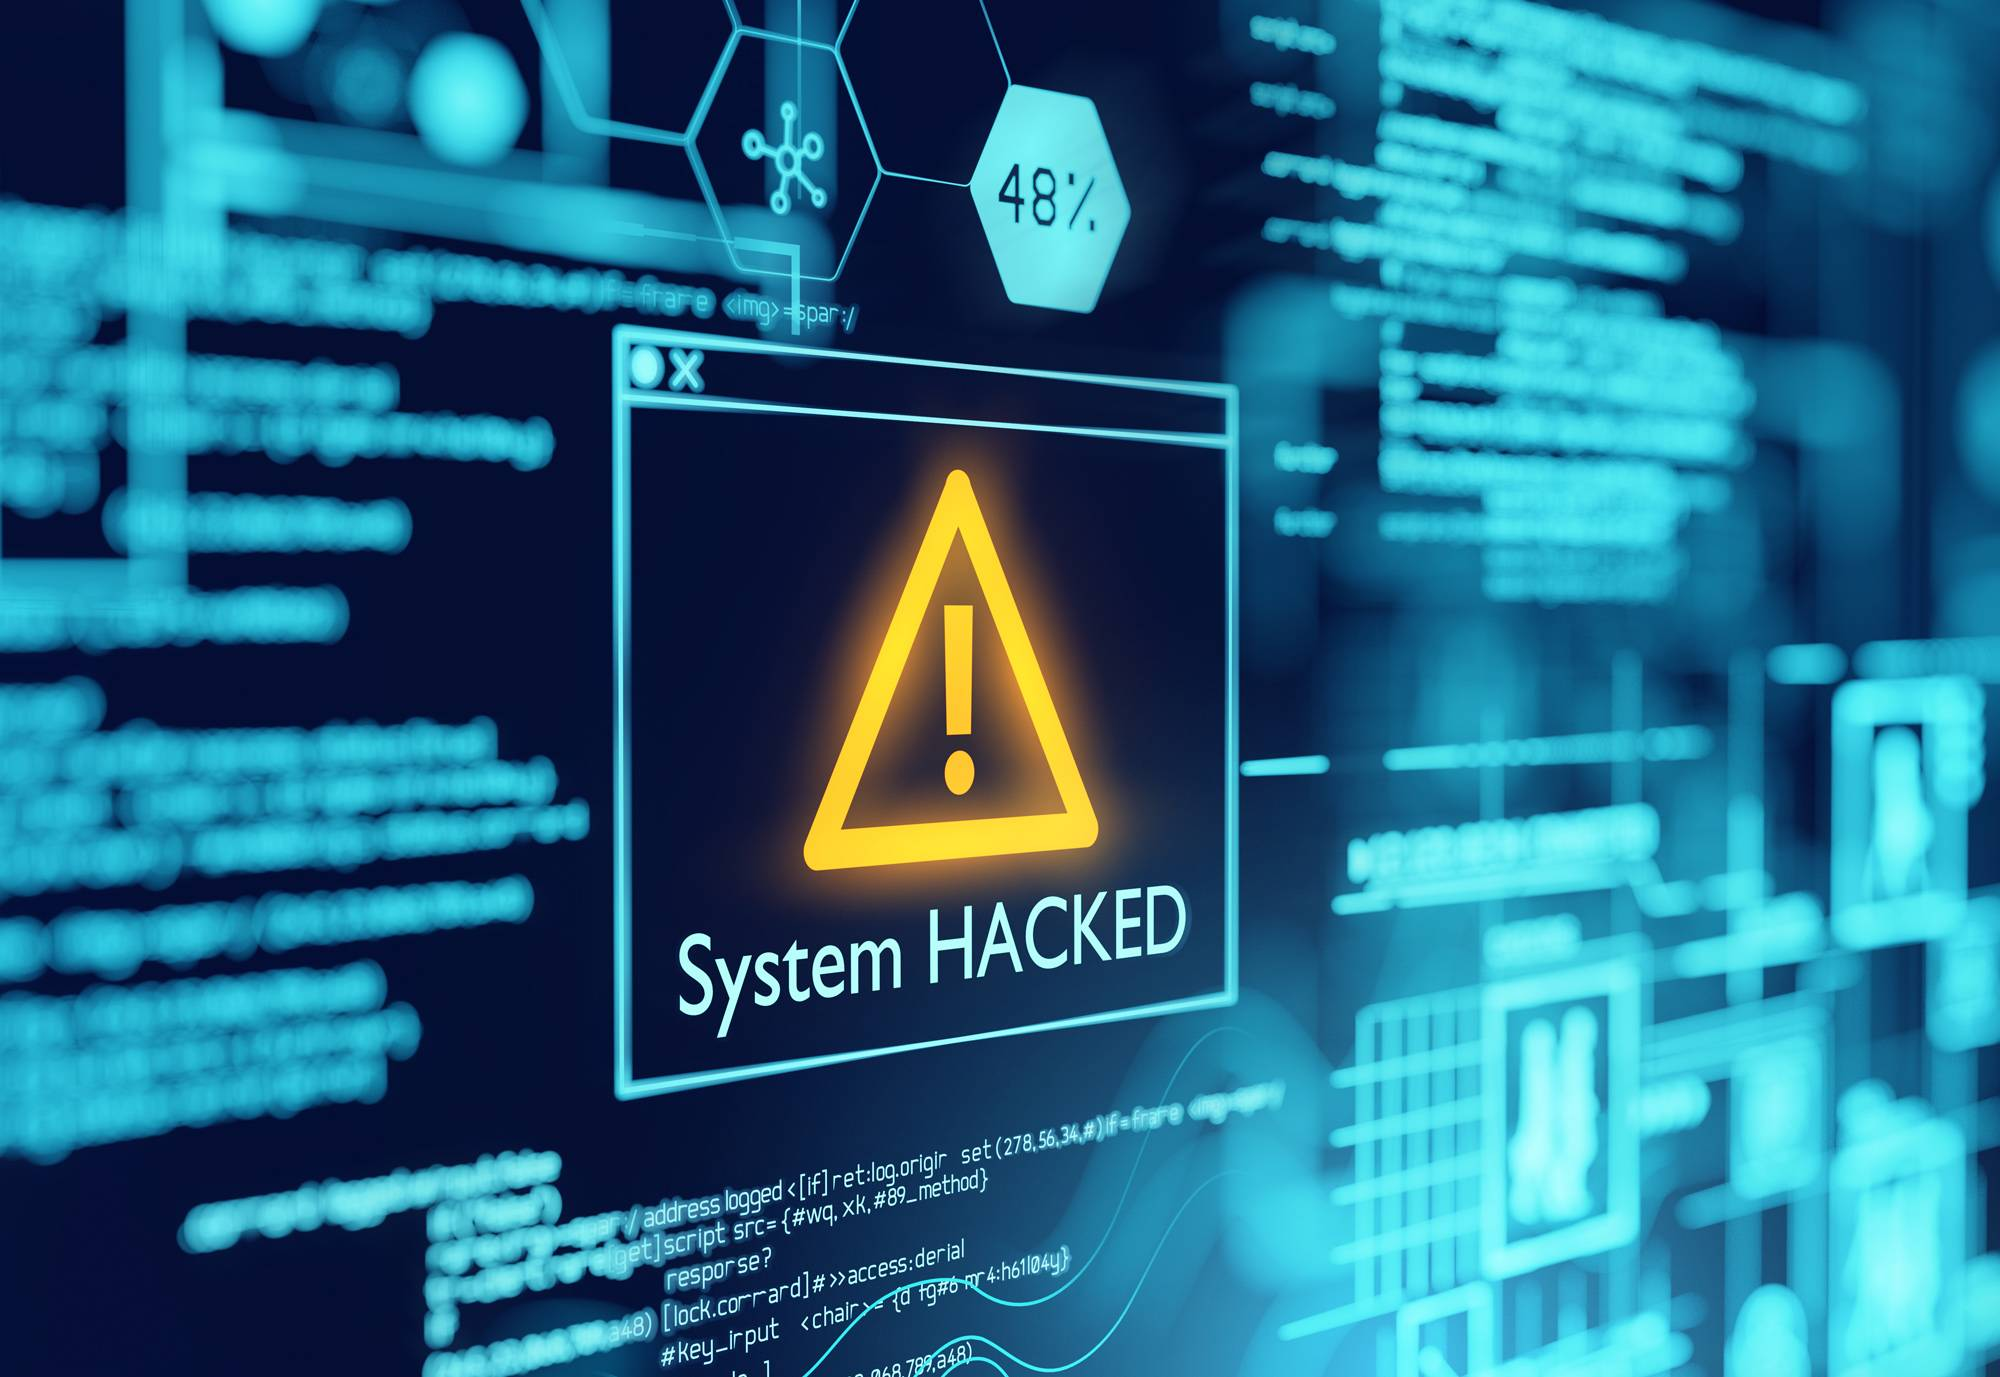 System Hacked on computer screen.